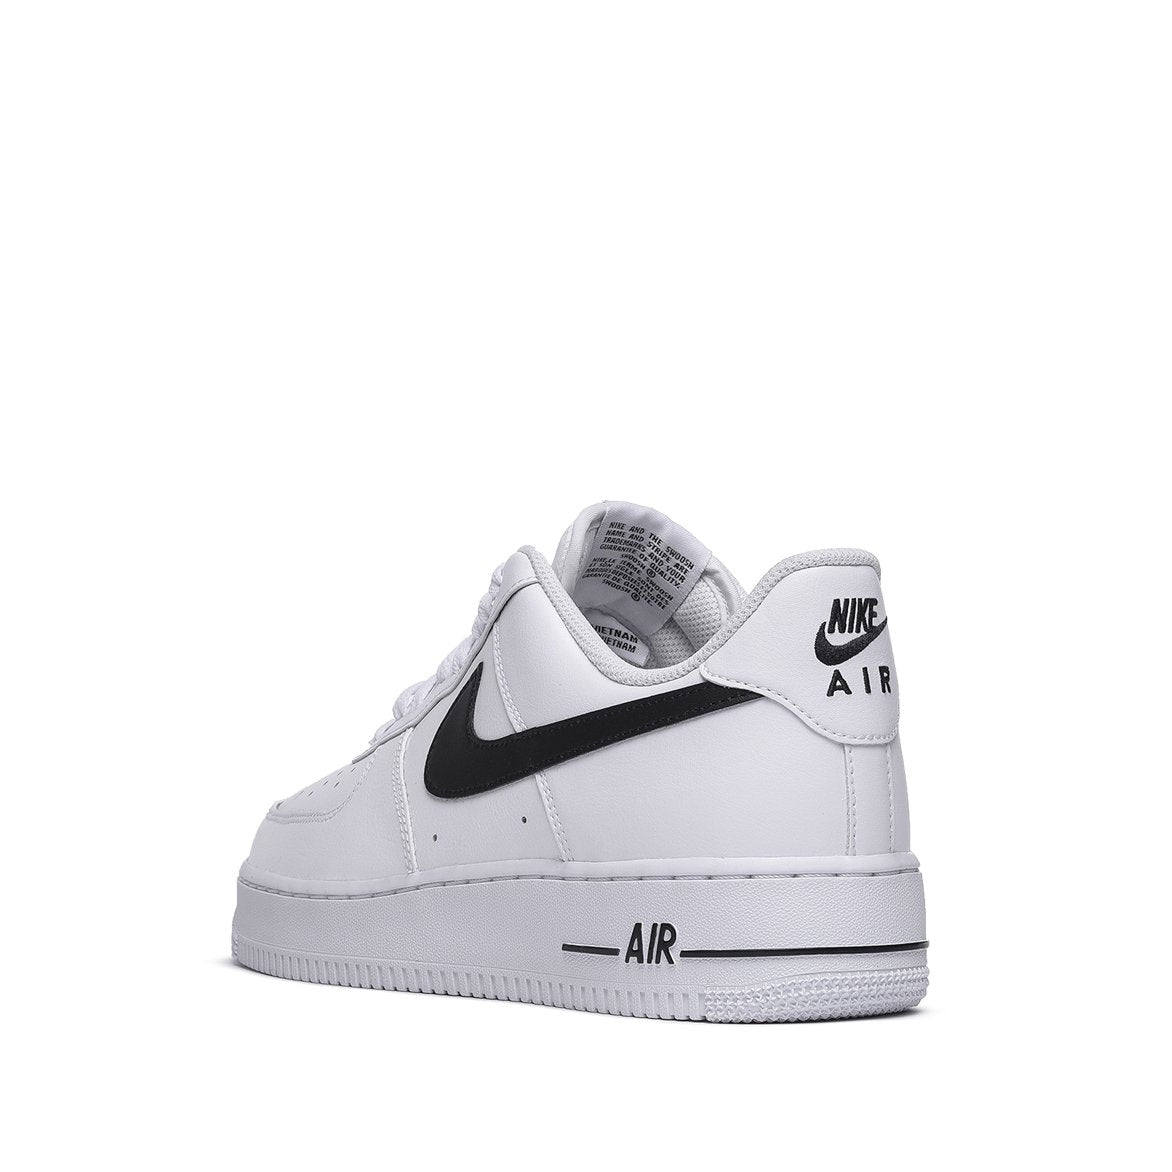 AIR FORCE 1 '07 AN20 - WHITE / BLACK